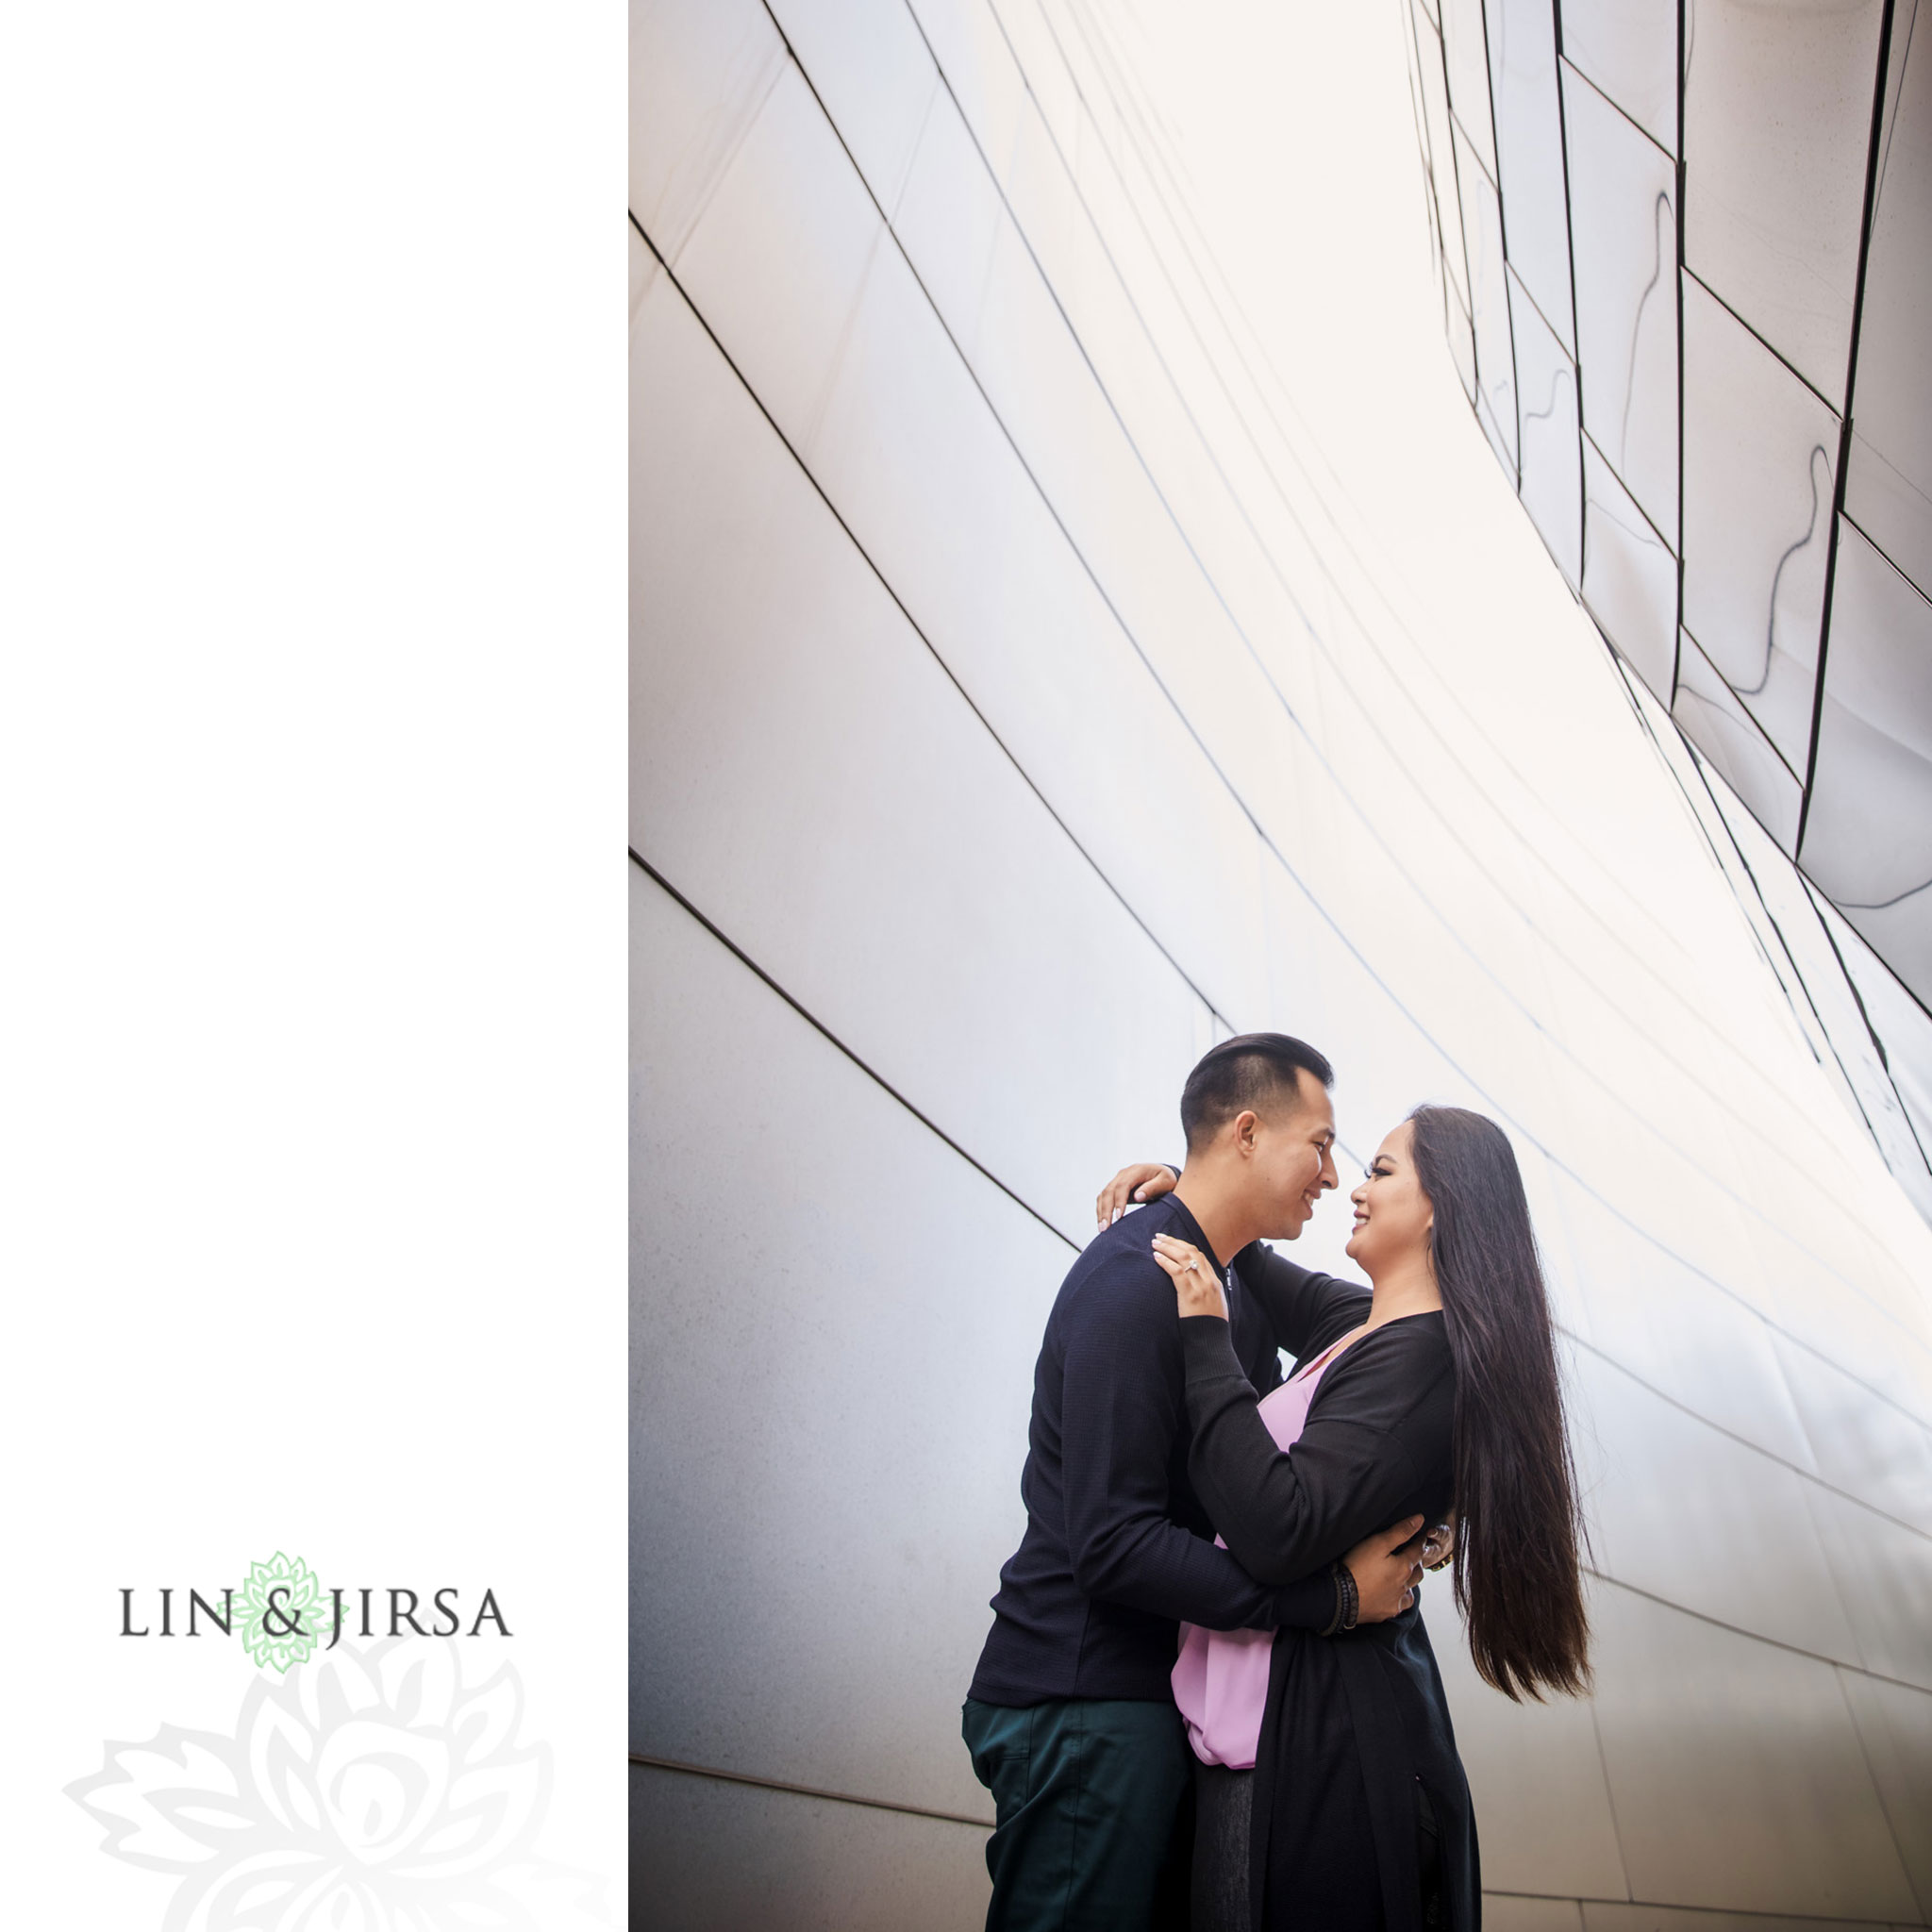 08 Walt Disney Concert Hall Los Angeles Engagement Photography